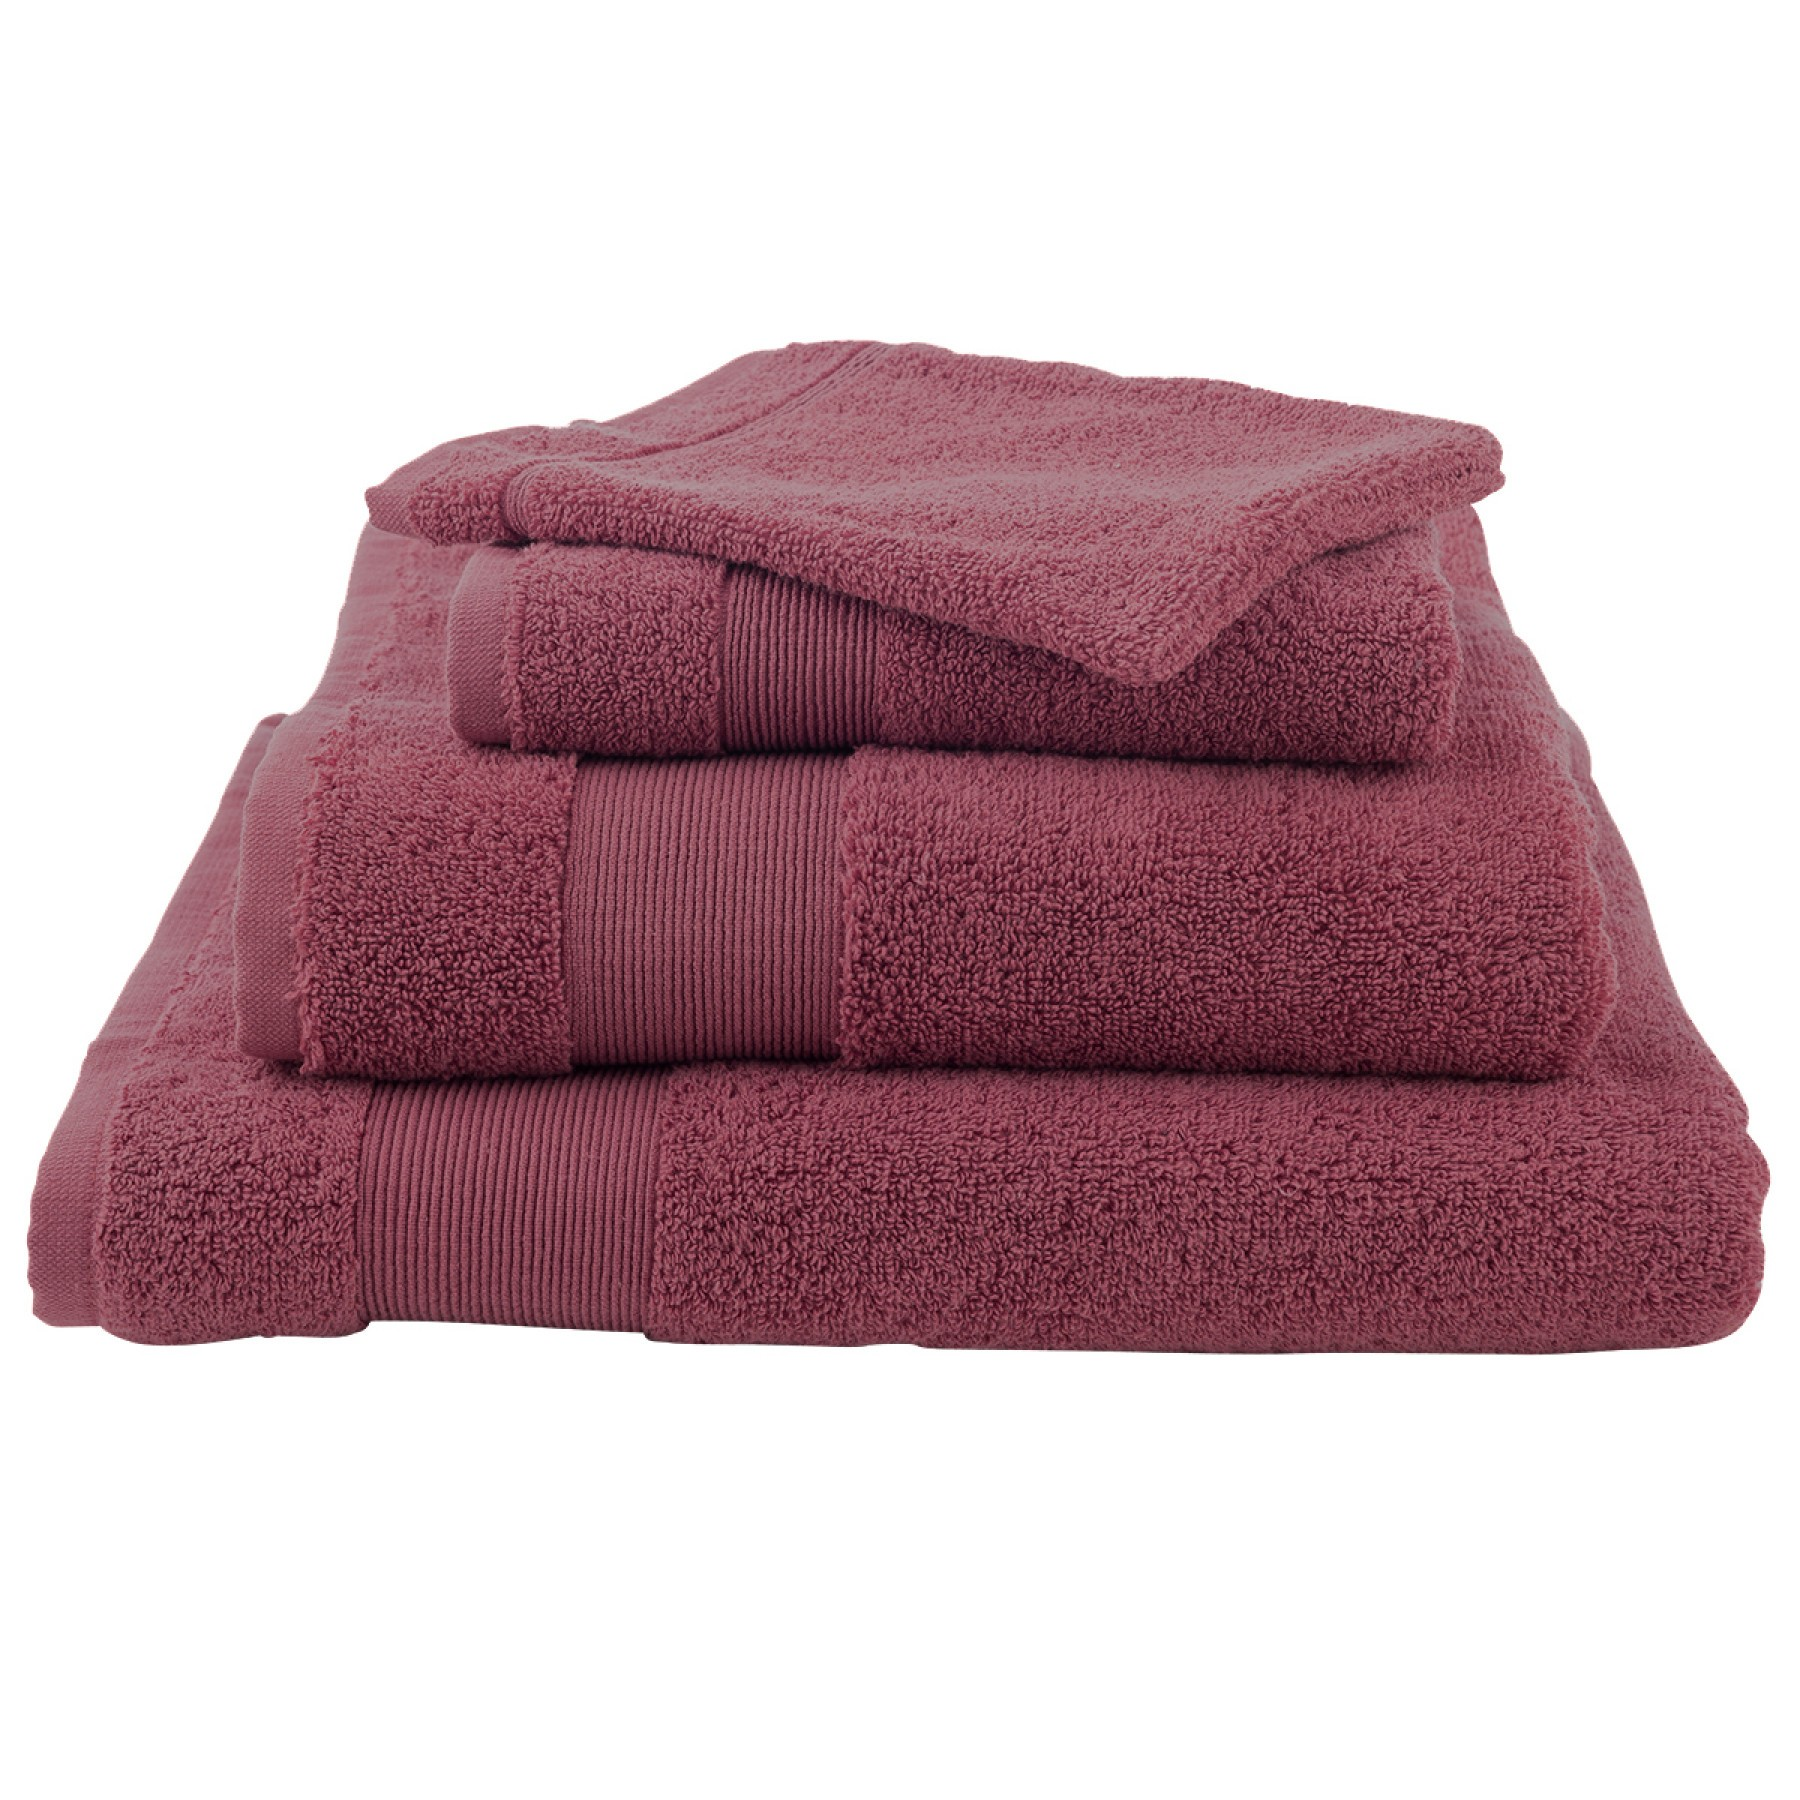 Livello Gastendoek Home Collection Cherry